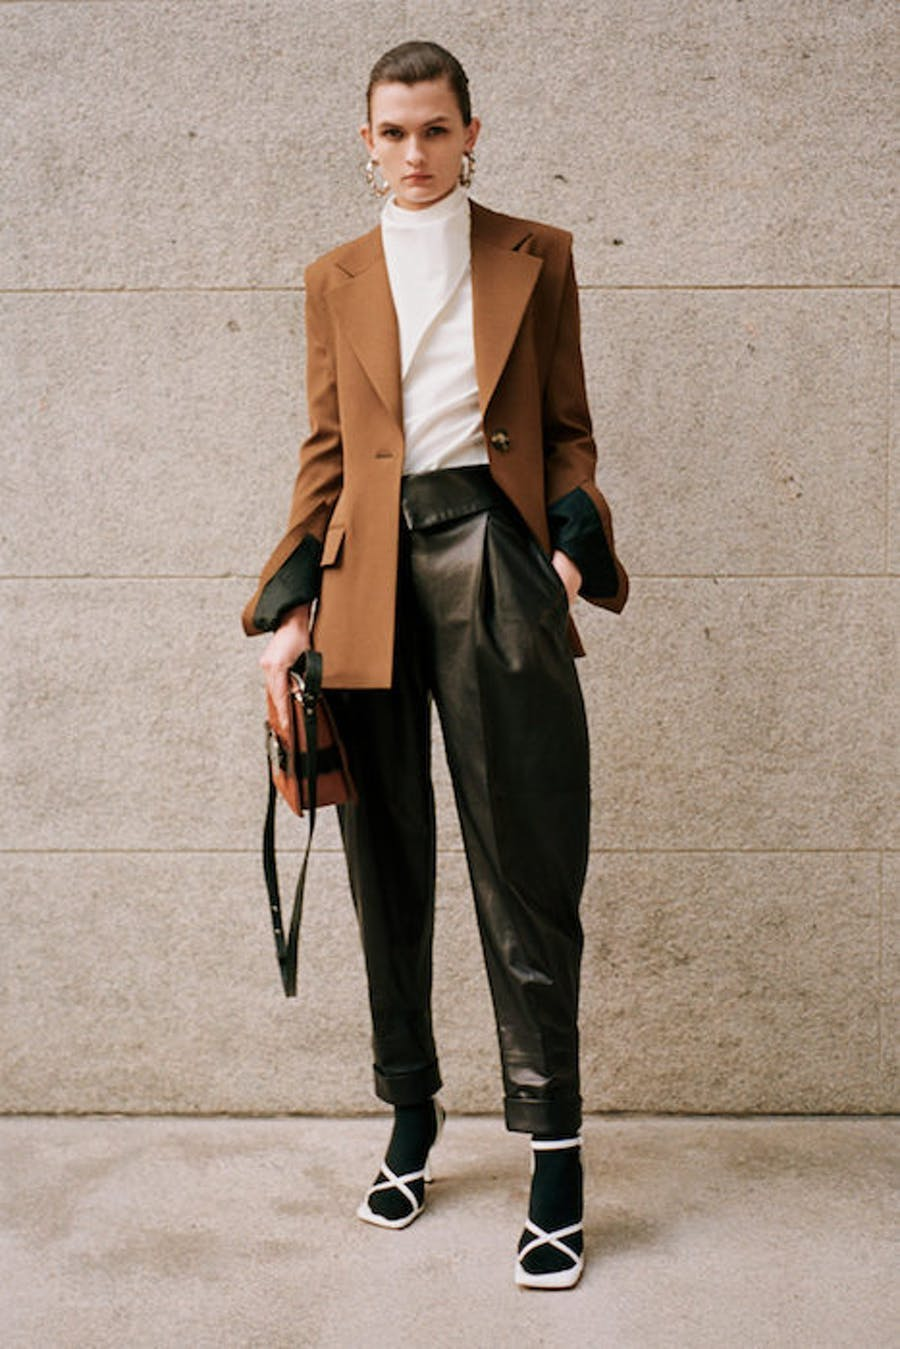 Proenza Schouler Fold Over Mock Neck Shirt in White Slim Mid Blazer in Brown Fold Over Trousers in Black Leather Pre Fall 20